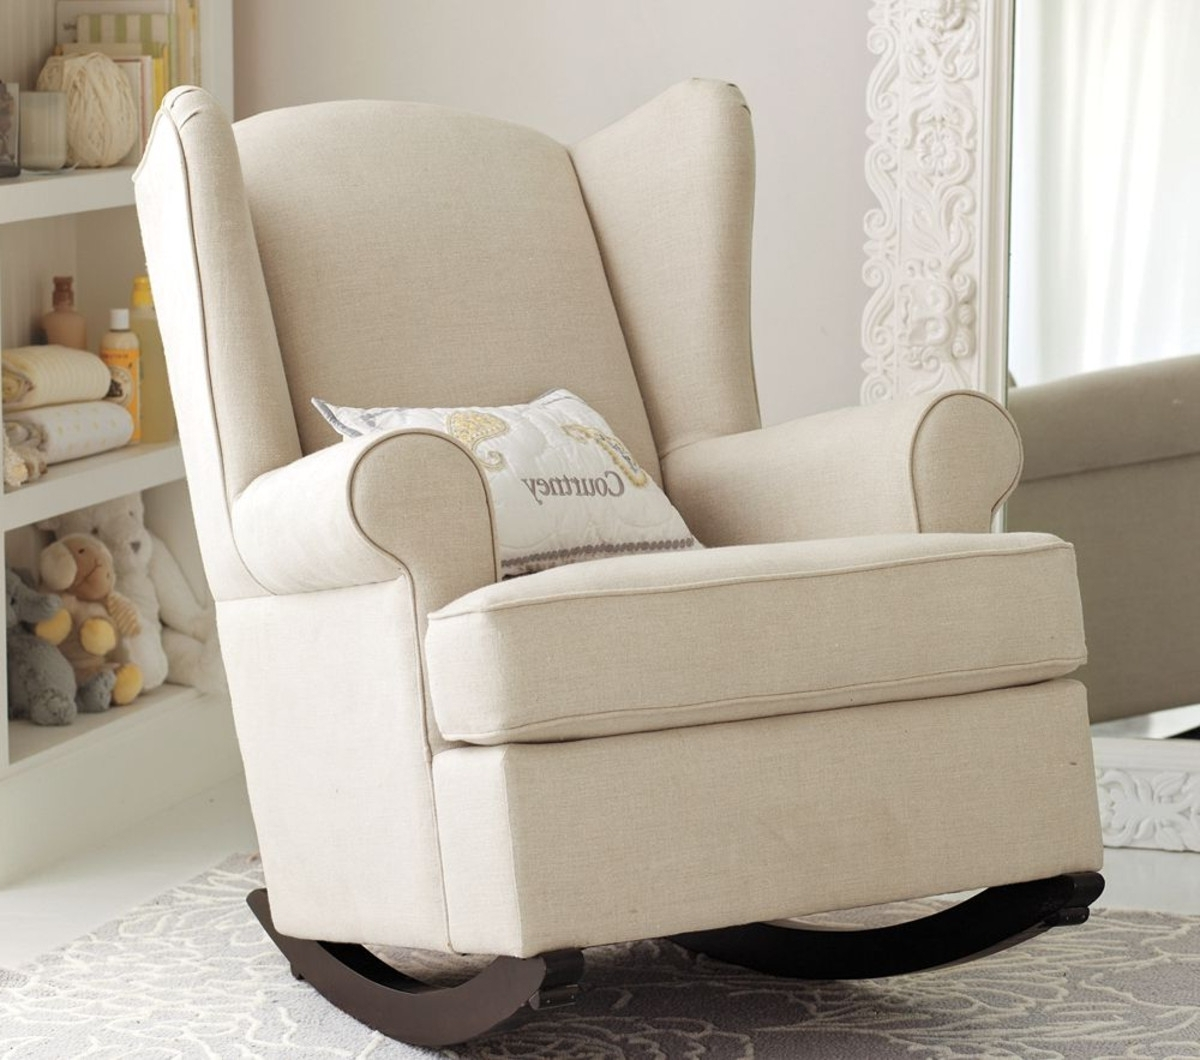 2017 Rocking Chair For Nursery Pregnancy F20X On Most Luxury Small Space Inside Rocking Chairs For Small Spaces (View 1 of 15)